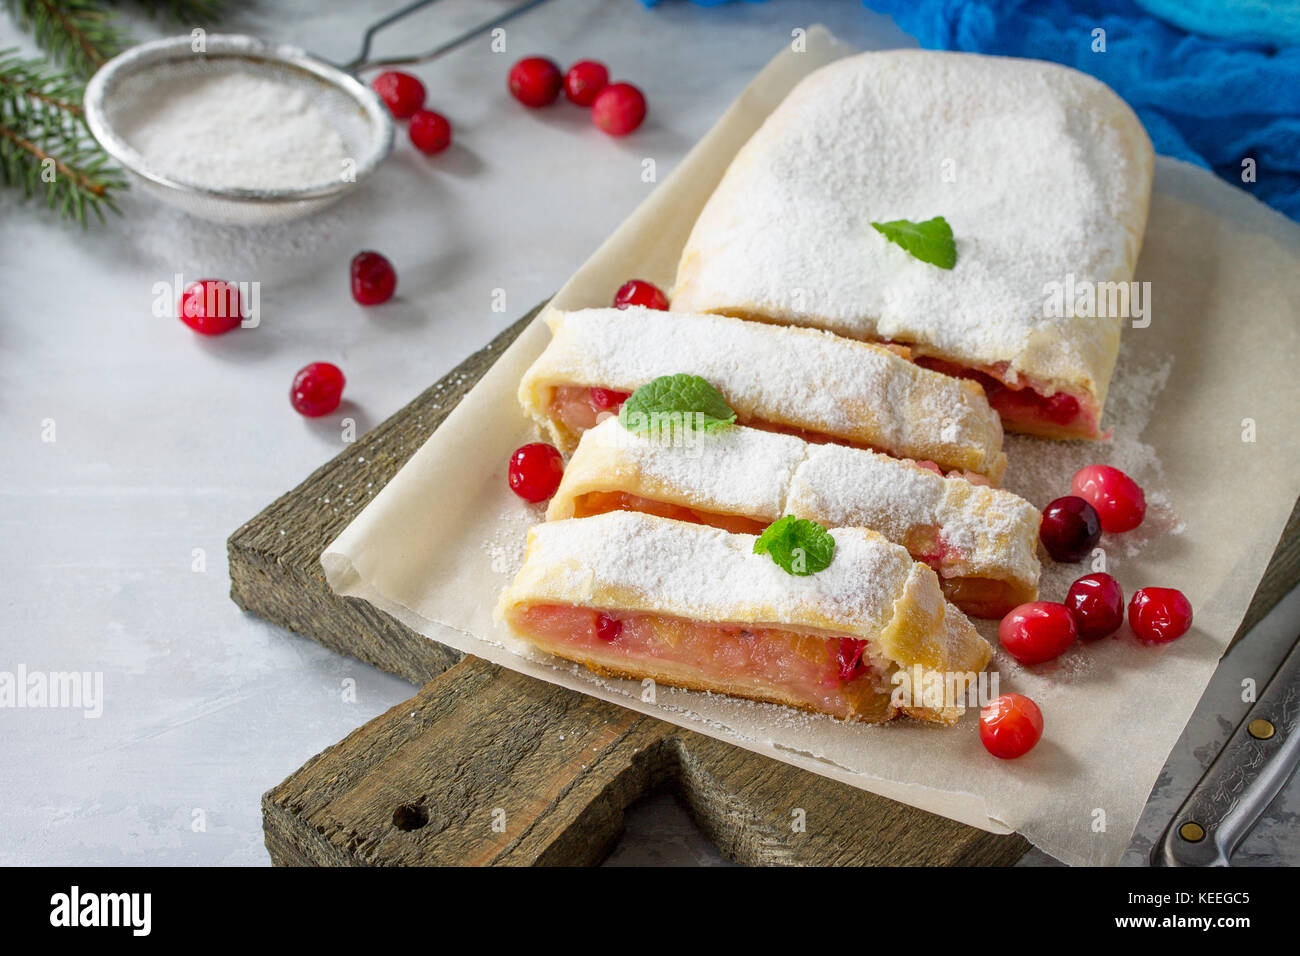 Homemade apple strudel with fresh apples, cranberry and sugar powder on slate or stone background. - Stock Image